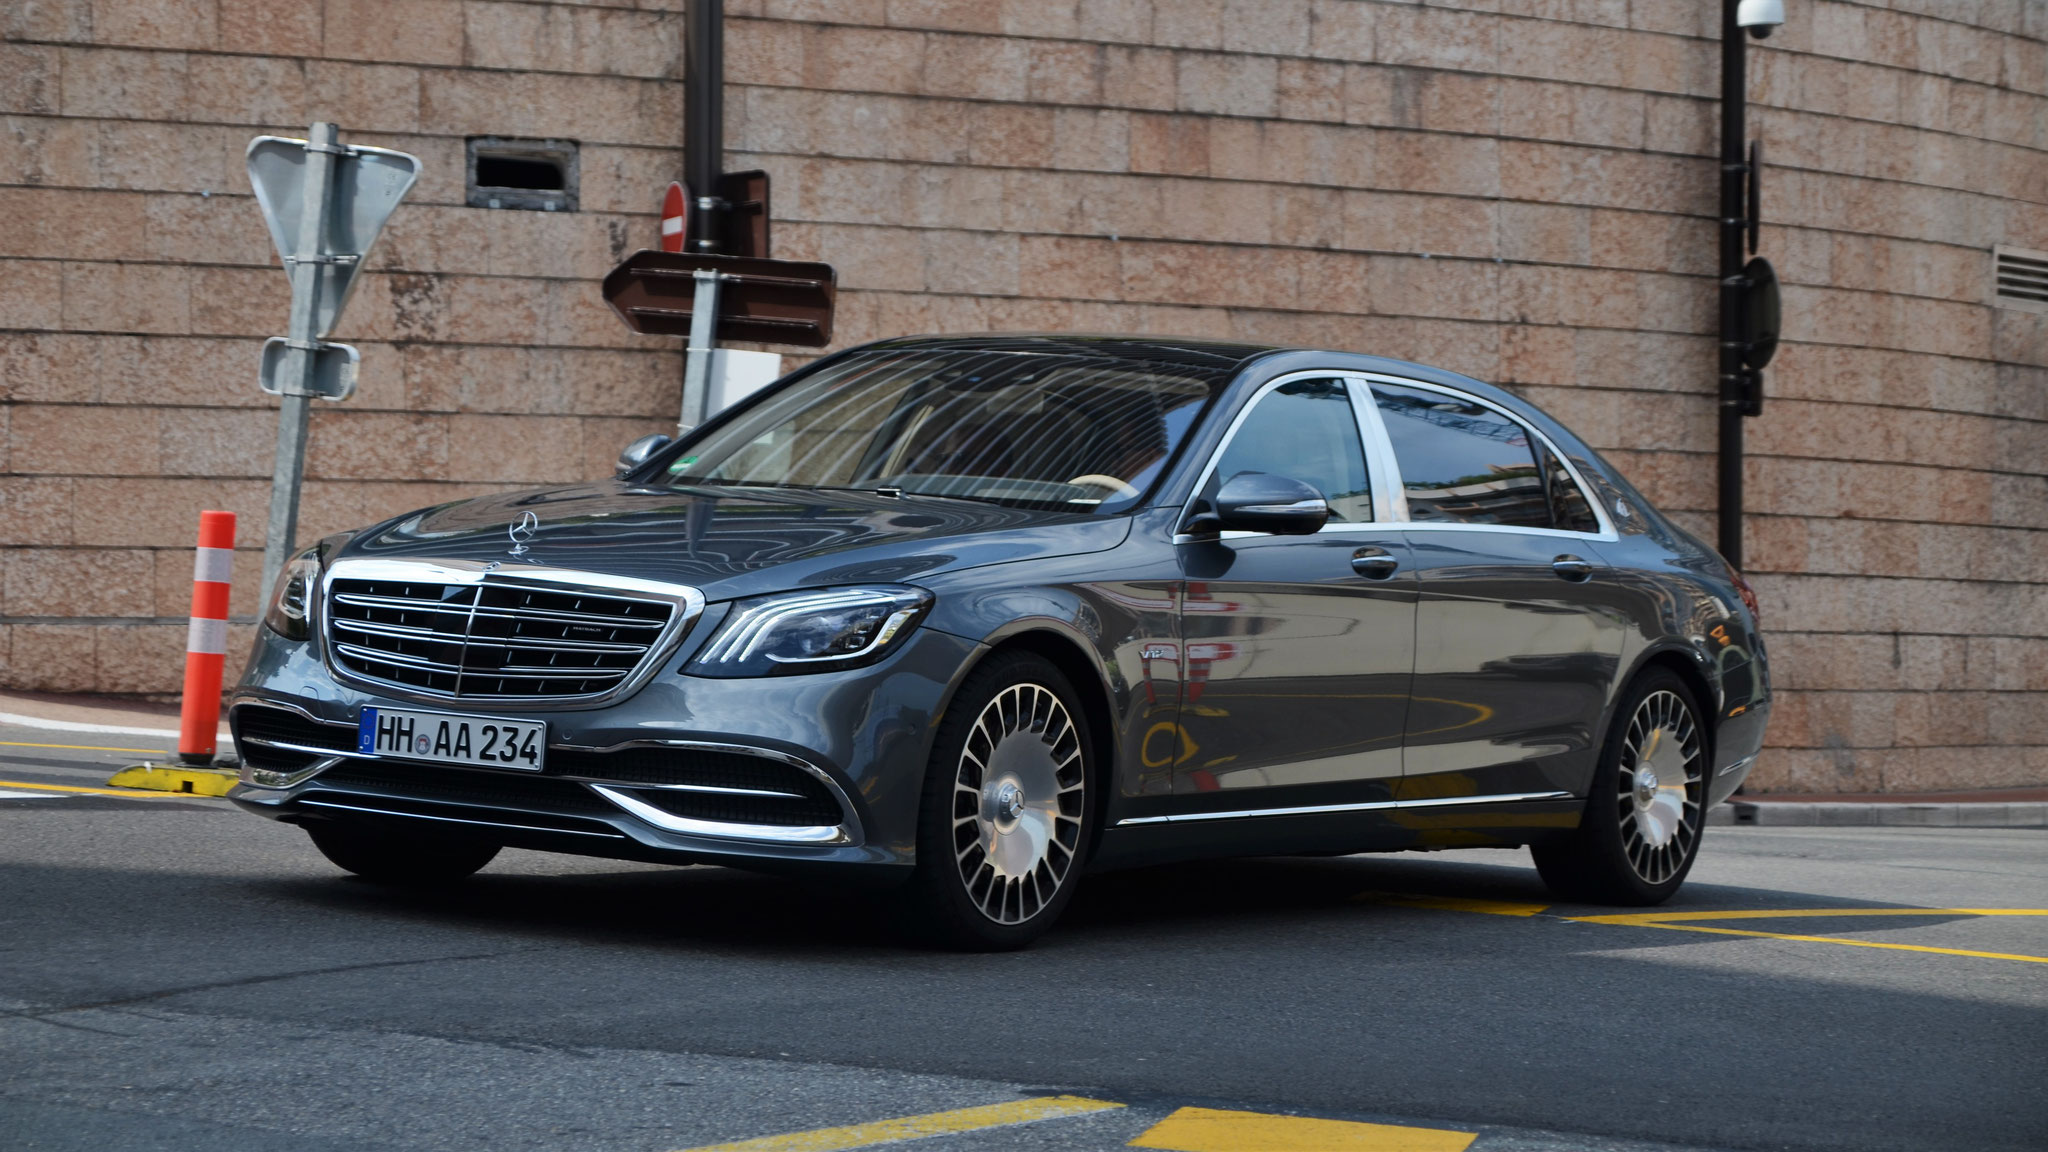 Mercedes Maybach S600 - HH-AA-234